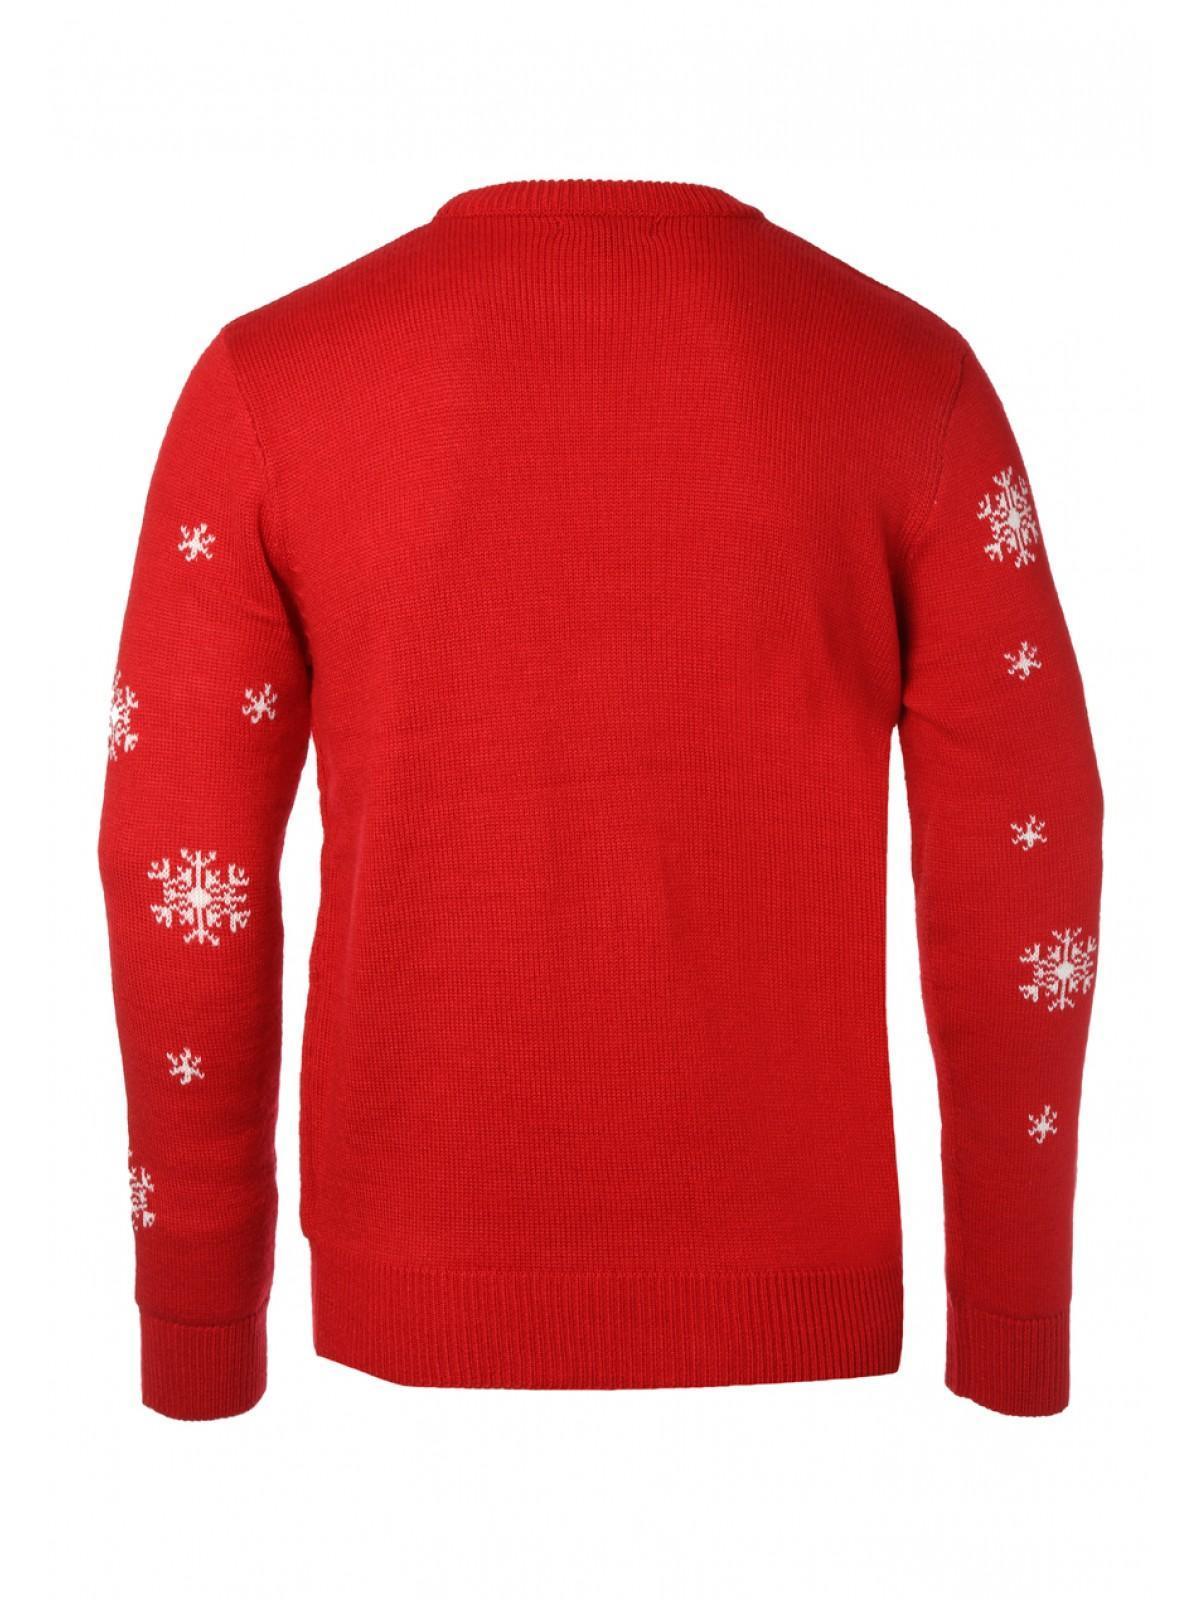 Mens Rudolph Christmas Jumper Peacocks